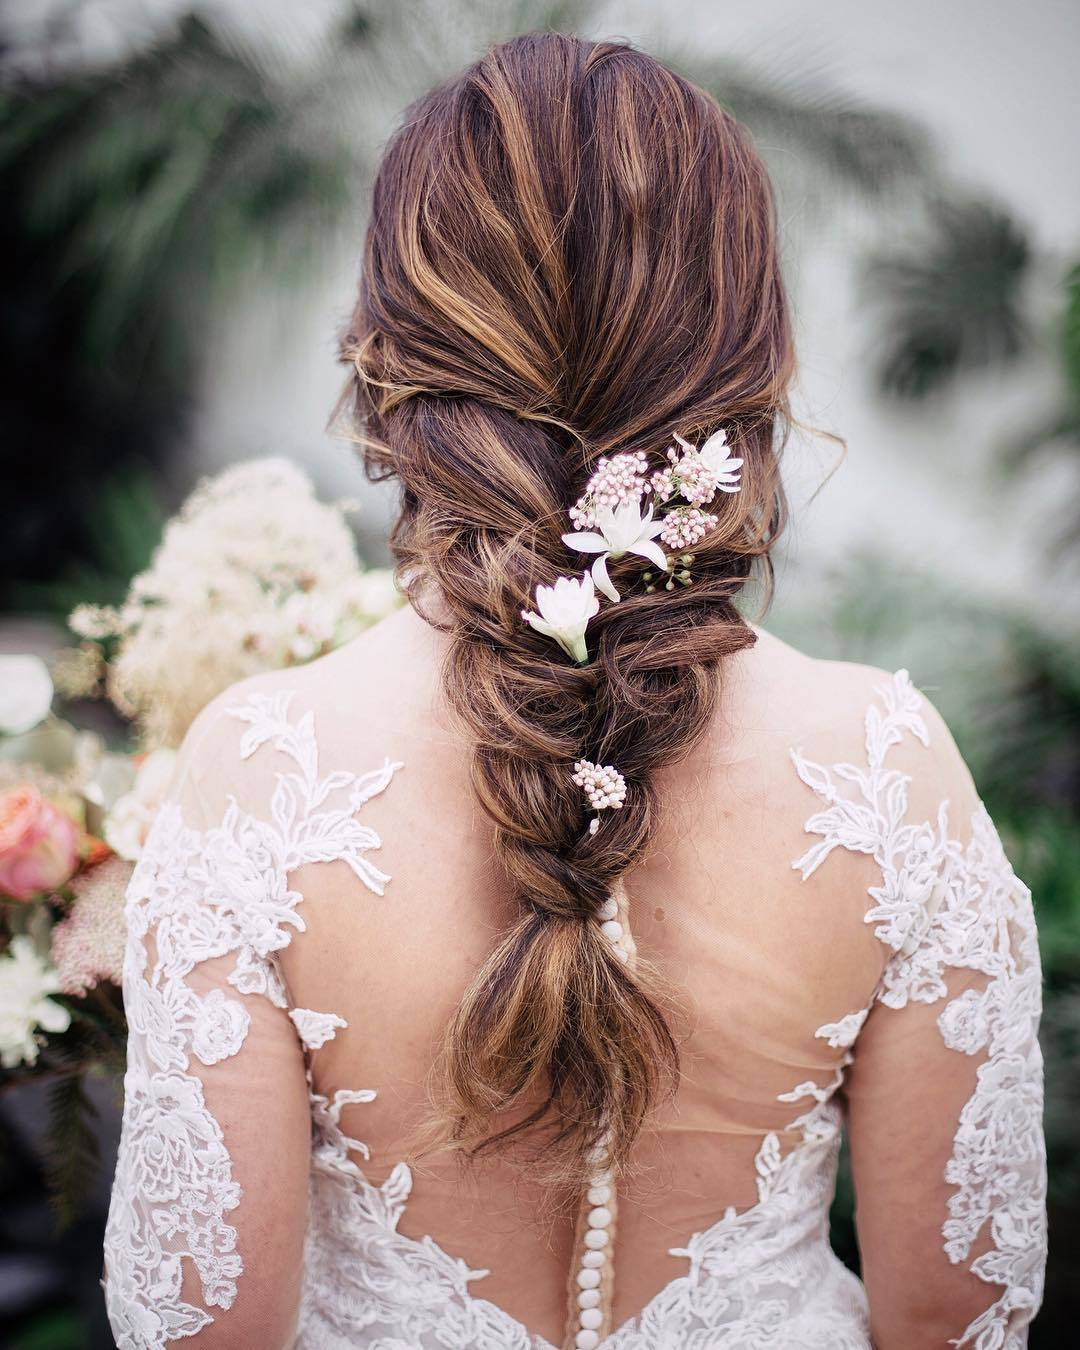 Loose Wedding Hairstyles: 47 Stunning Wedding Hairstyles All Brides Will Love